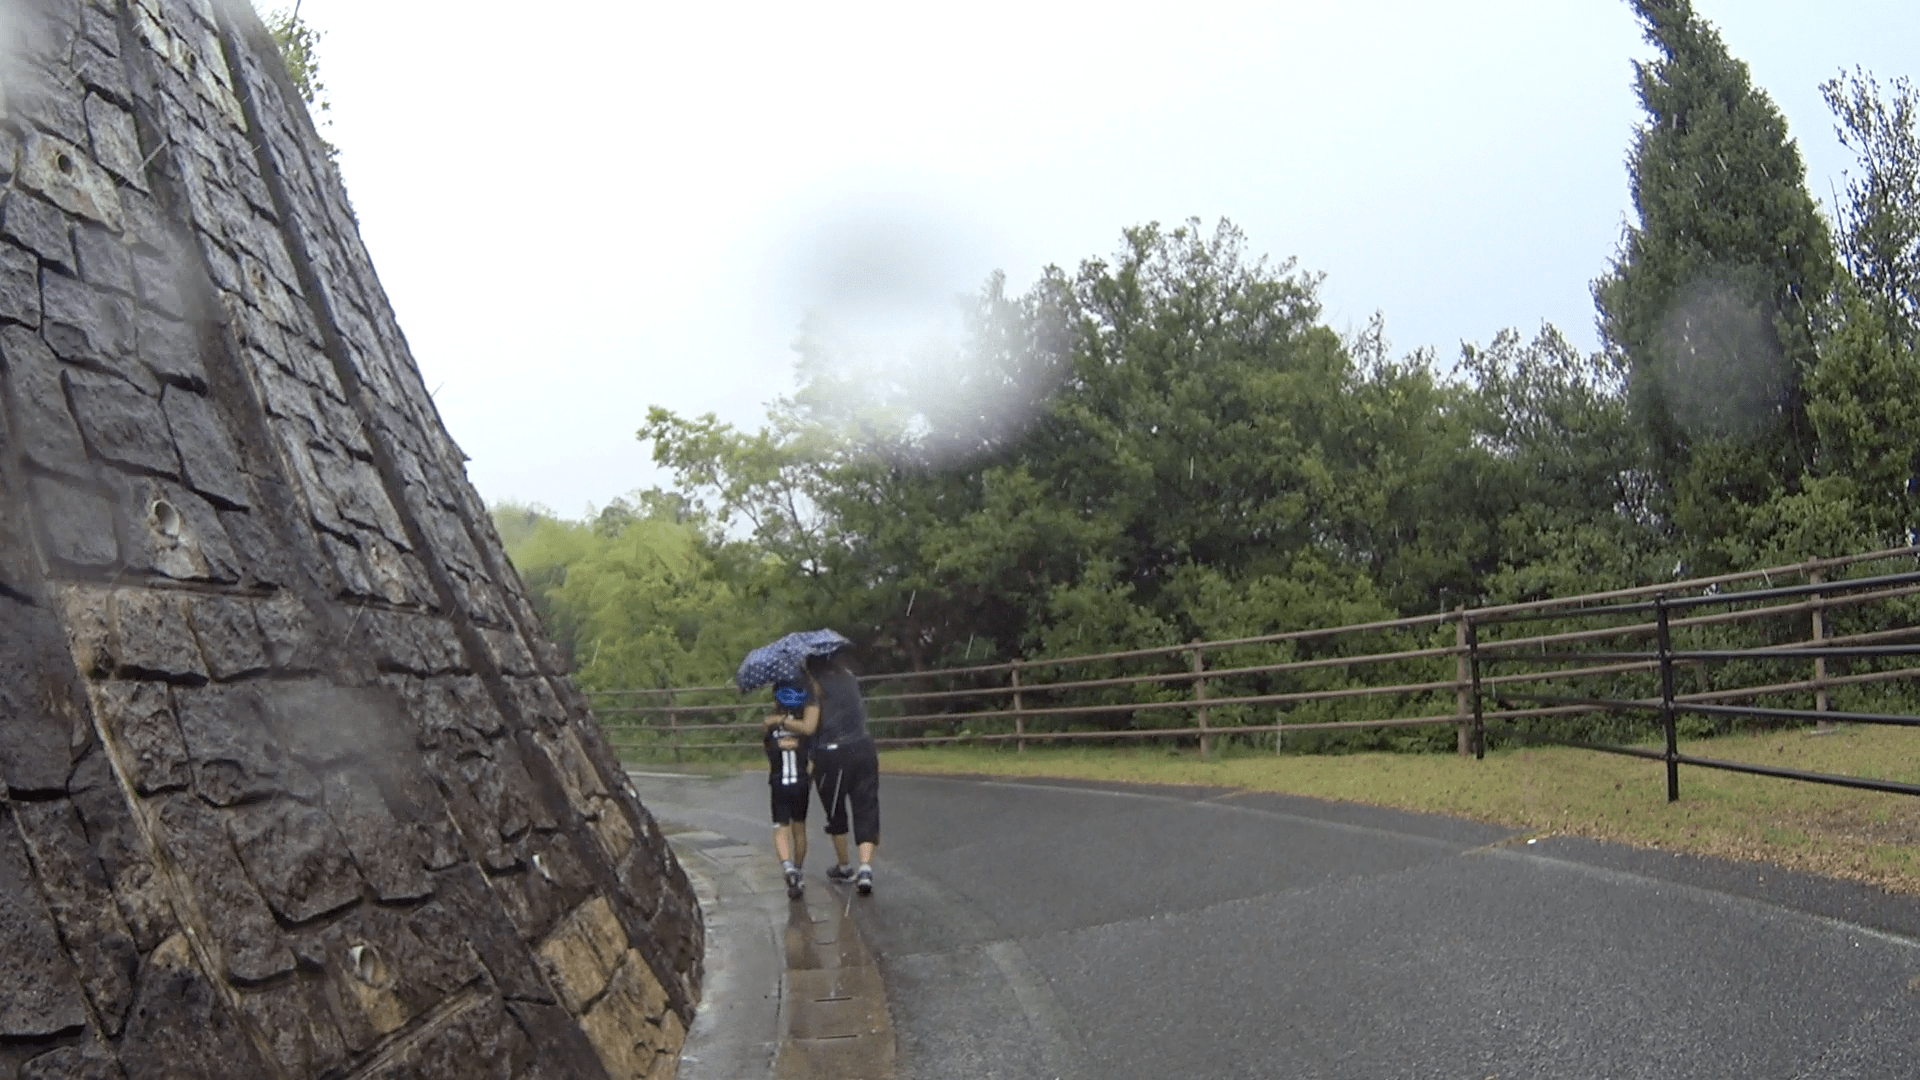 Sudden downpour right after we started the ride